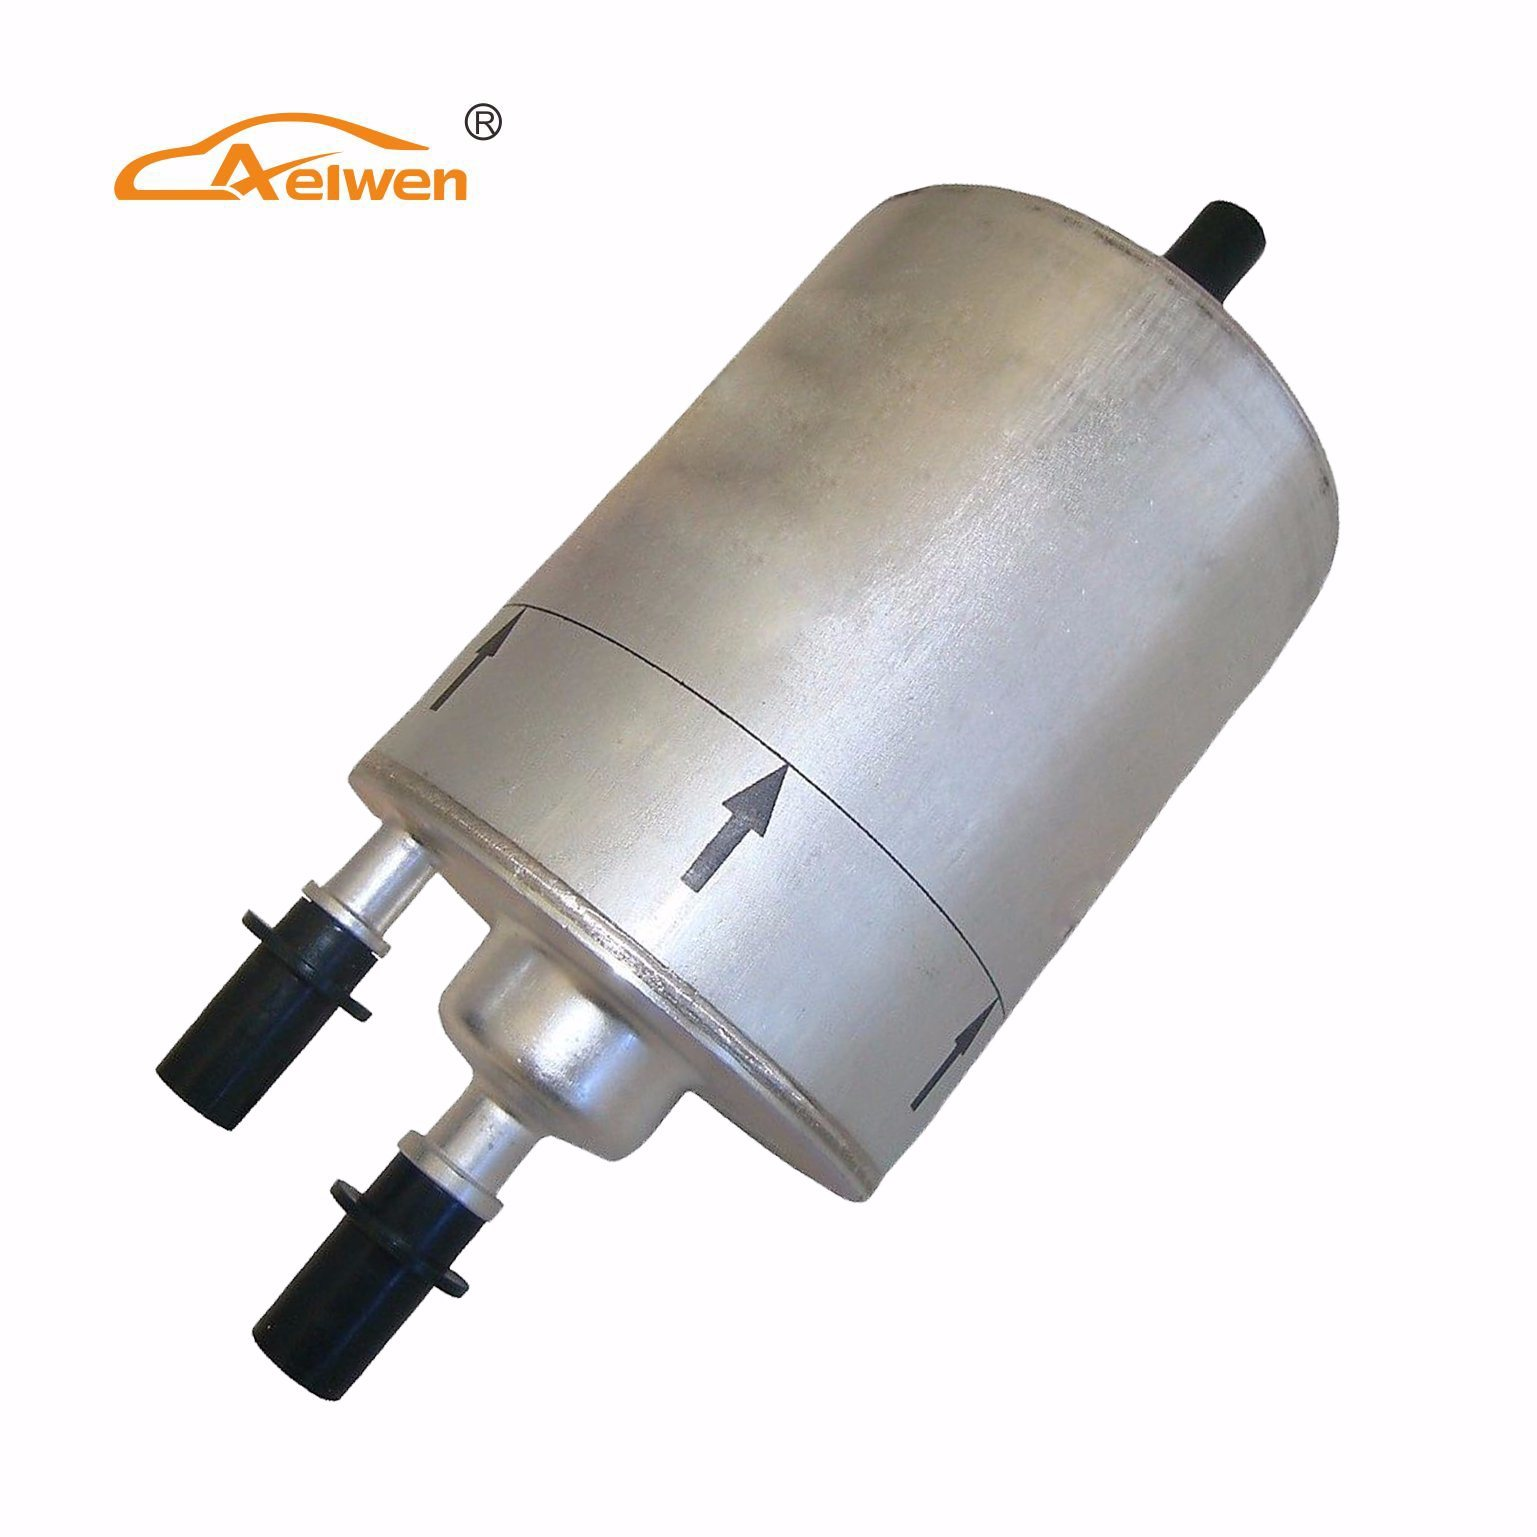 hight resolution of china aelwen hot sale car fuel filter for audi e146 4f0201511c 4f0201511e china